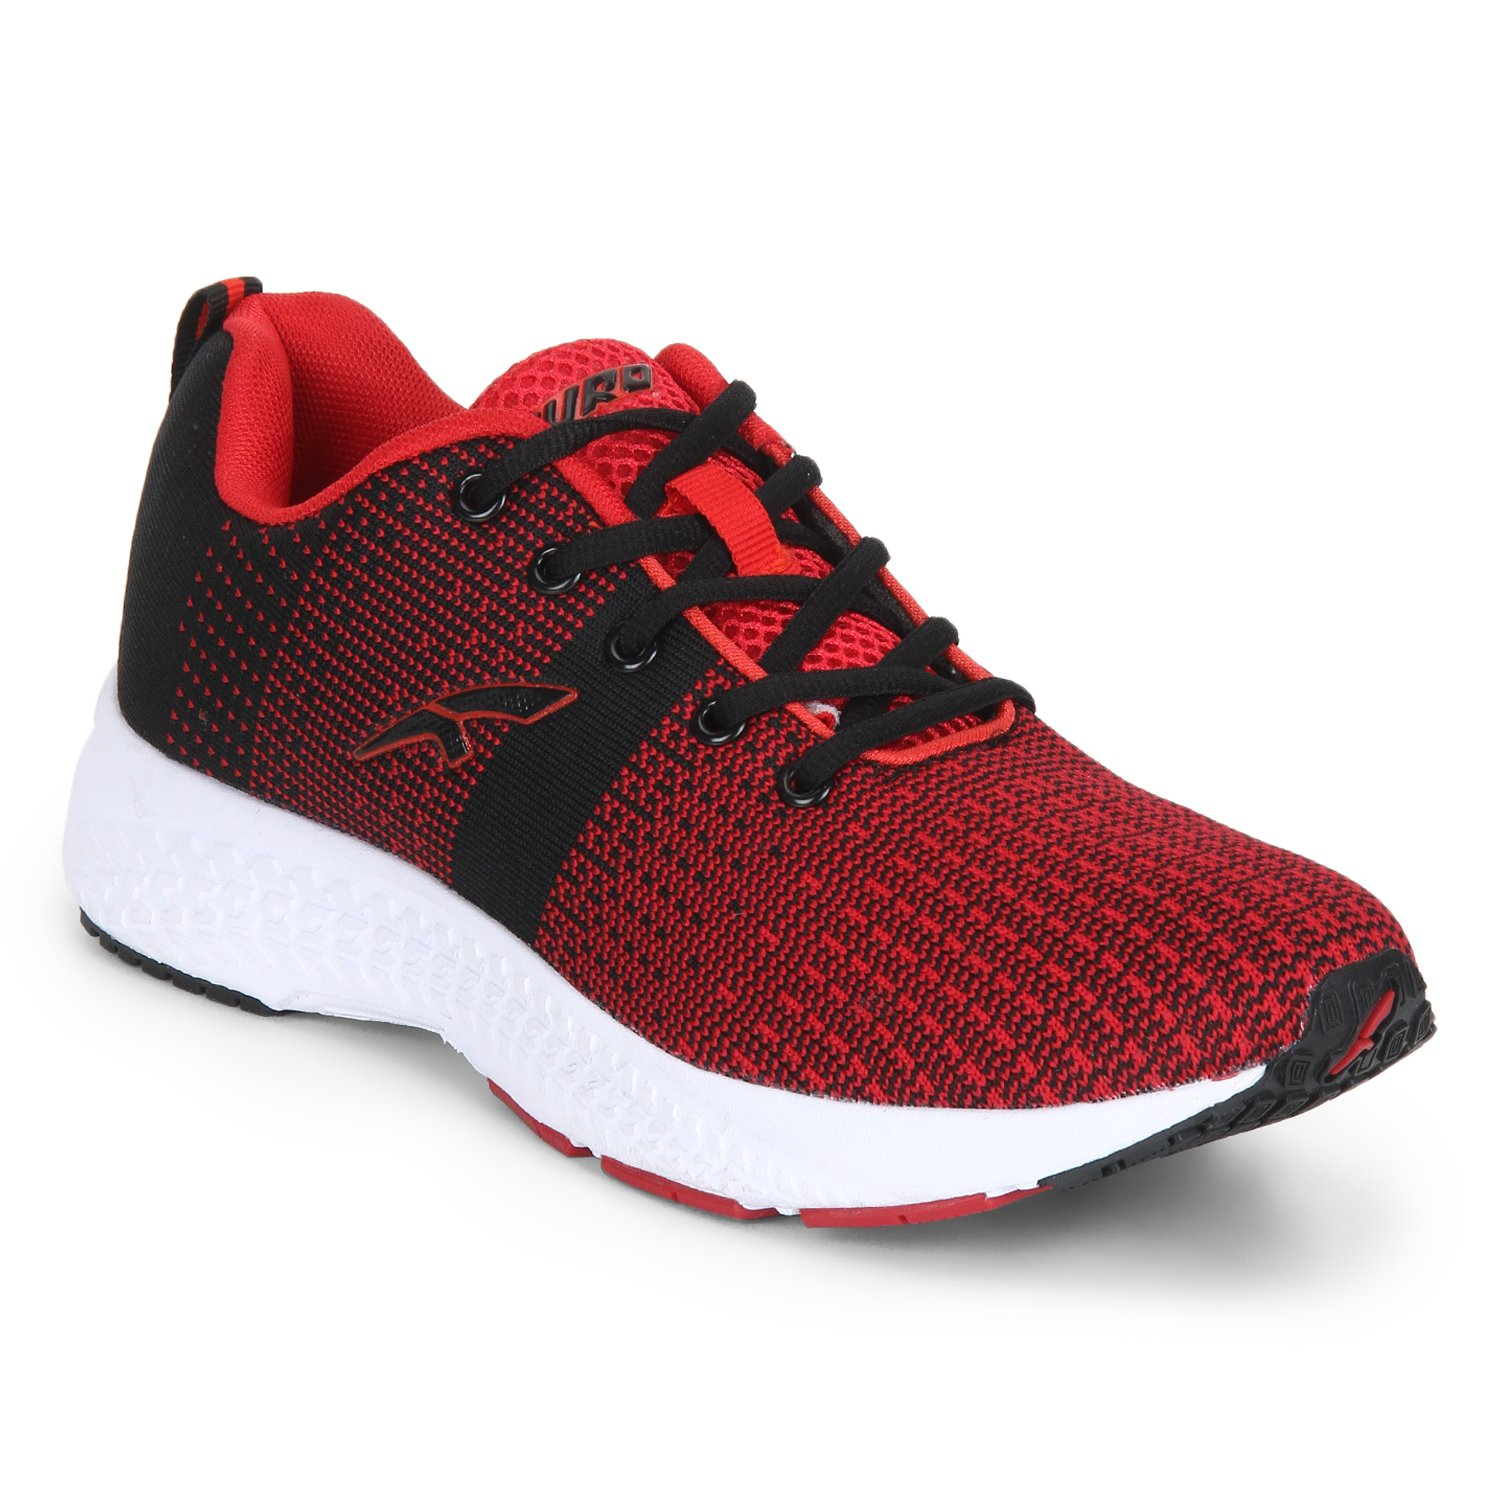 Red chief running shoes under 2000 for men